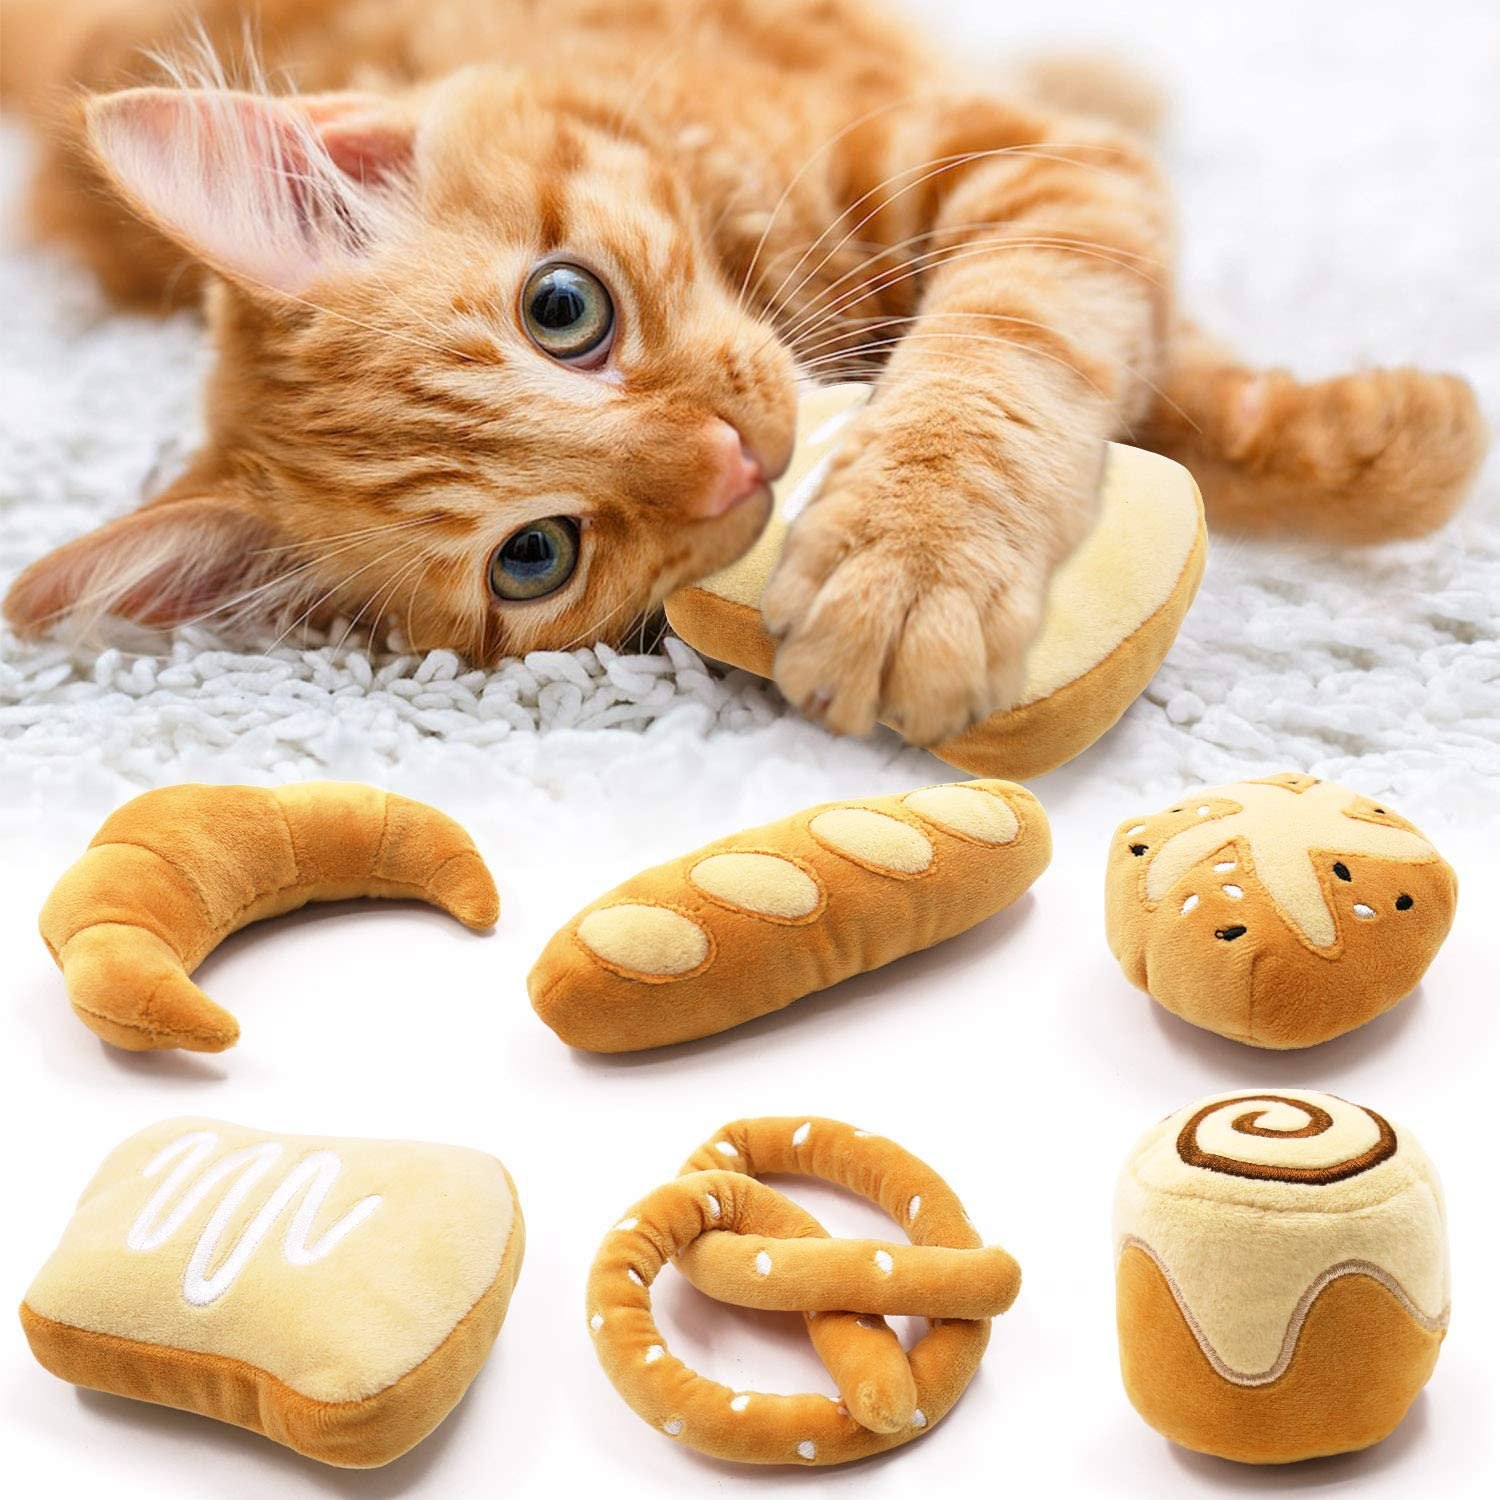 Bread Catnip Toys Kitten Interactive Toys for Cat Lover Gifts Kitty Chew Bite Kick Toys Supplies Baguette Croissant Pretzel Toast Bun Cinnamon Roll Plush Catmint Pet Presents Set of 6